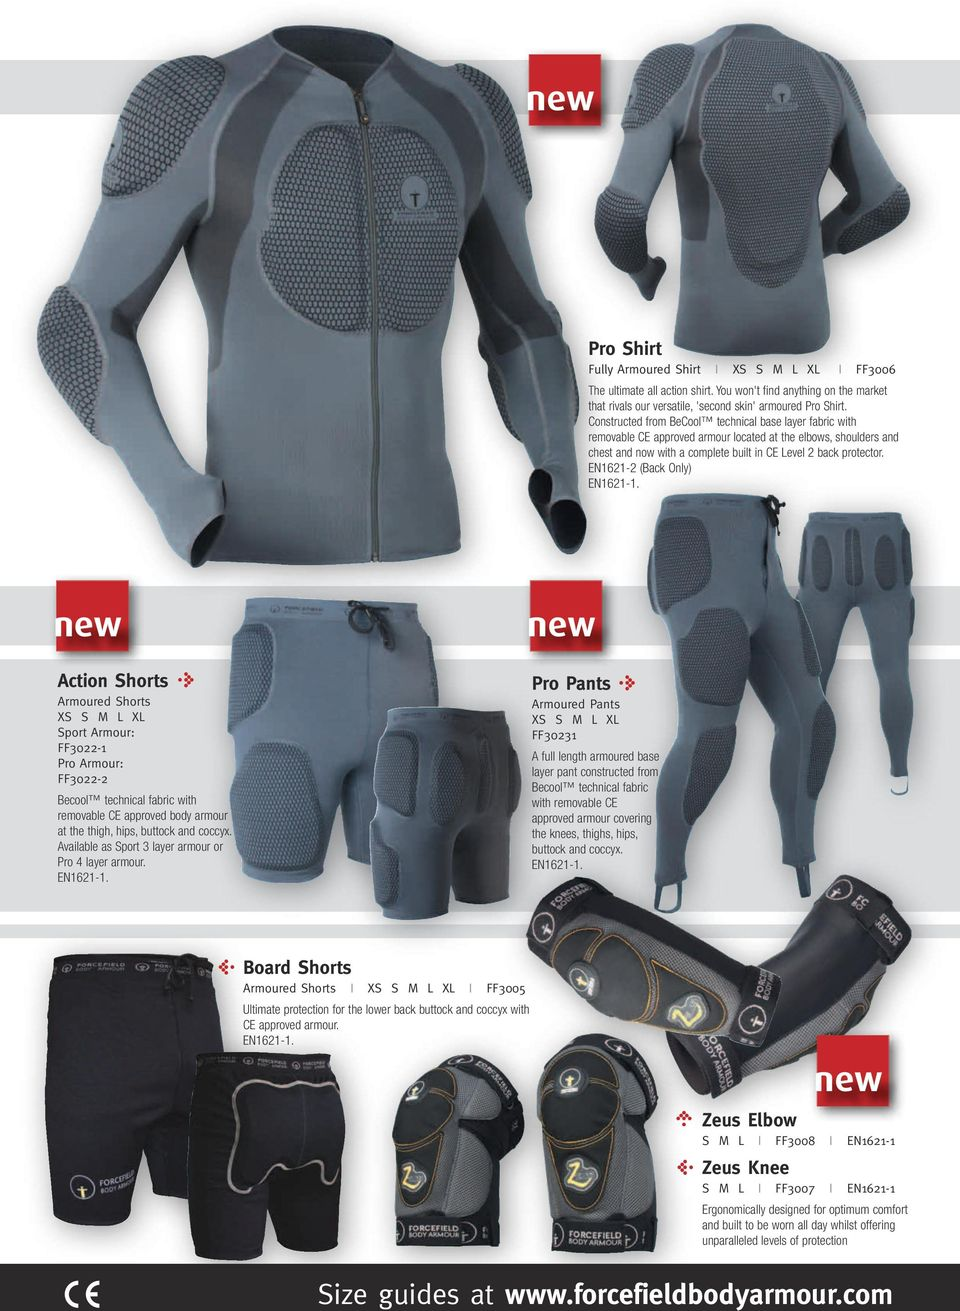 EN1621-2 (Back Only) new Action Shorts Armoured Shorts XS XL Sport Armour: FF3022-1 Pro Armour: FF3022-2 Becool technical fabric with removable CE approved body armour at the thigh, hips, buttock and